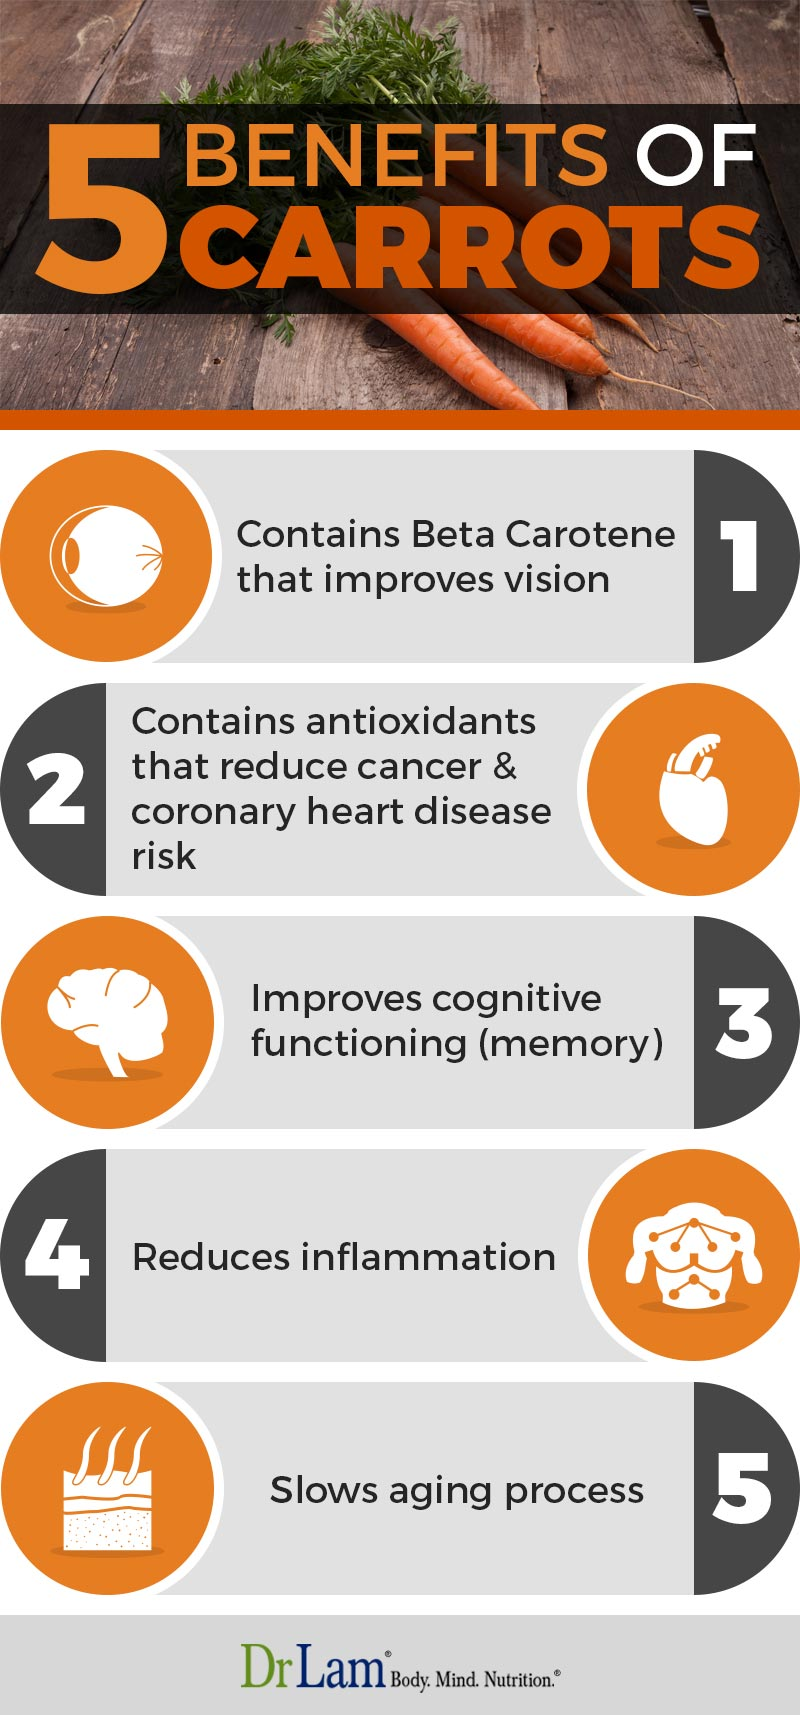 Check out this easy to understand infographic about five benefits of carrots